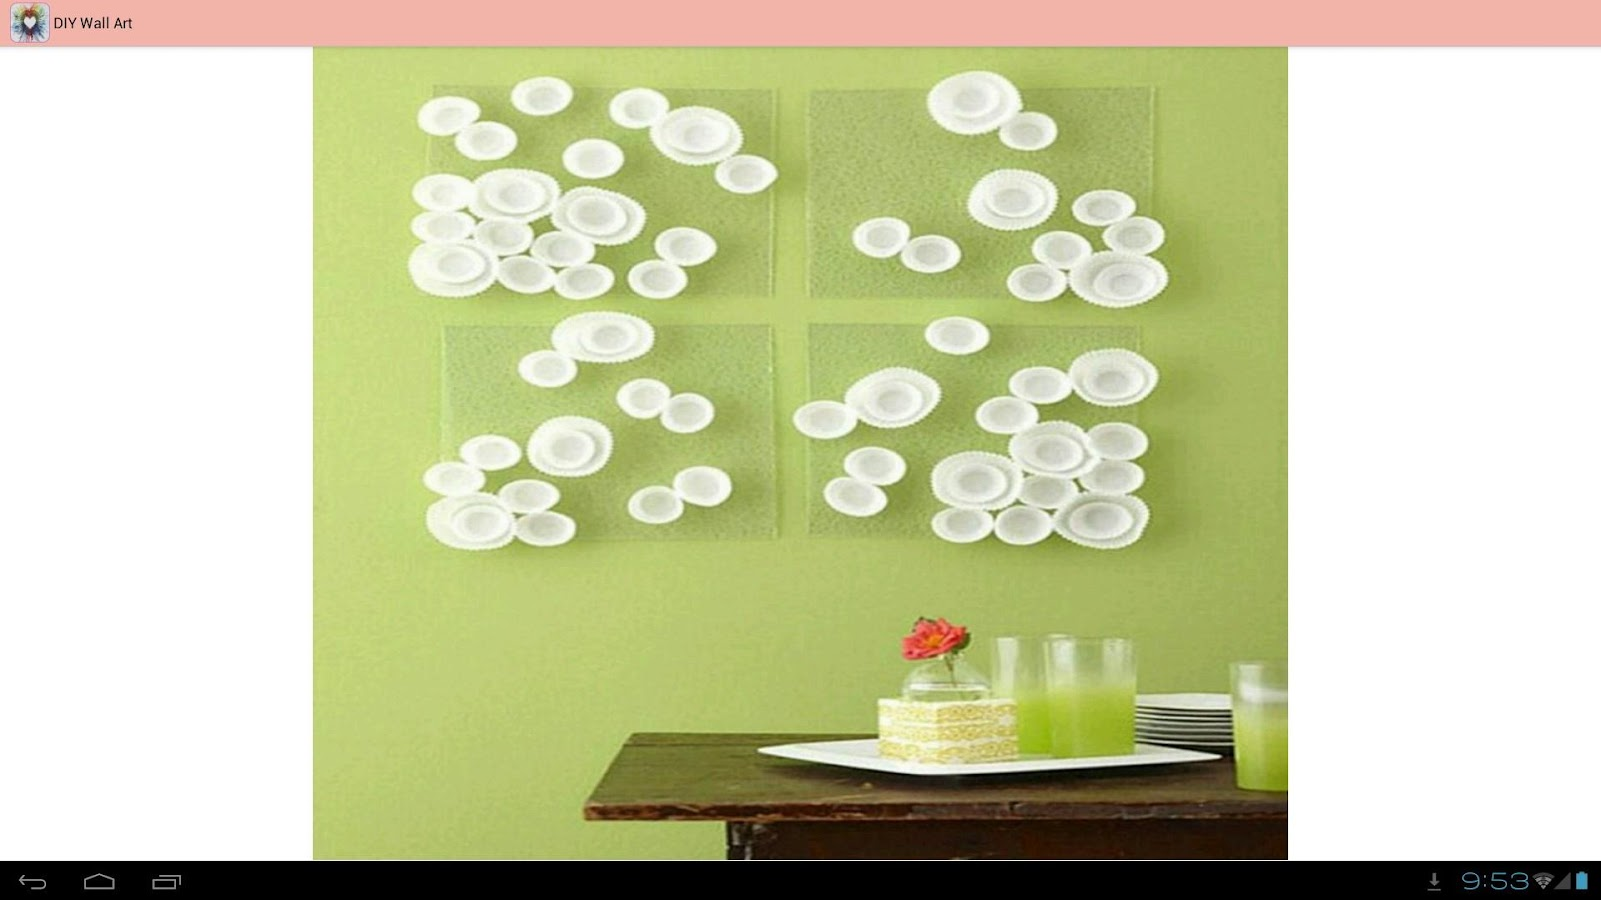 Enchanting Diy Ideas For Wall Art Mold - The Wall Art Decorations ...